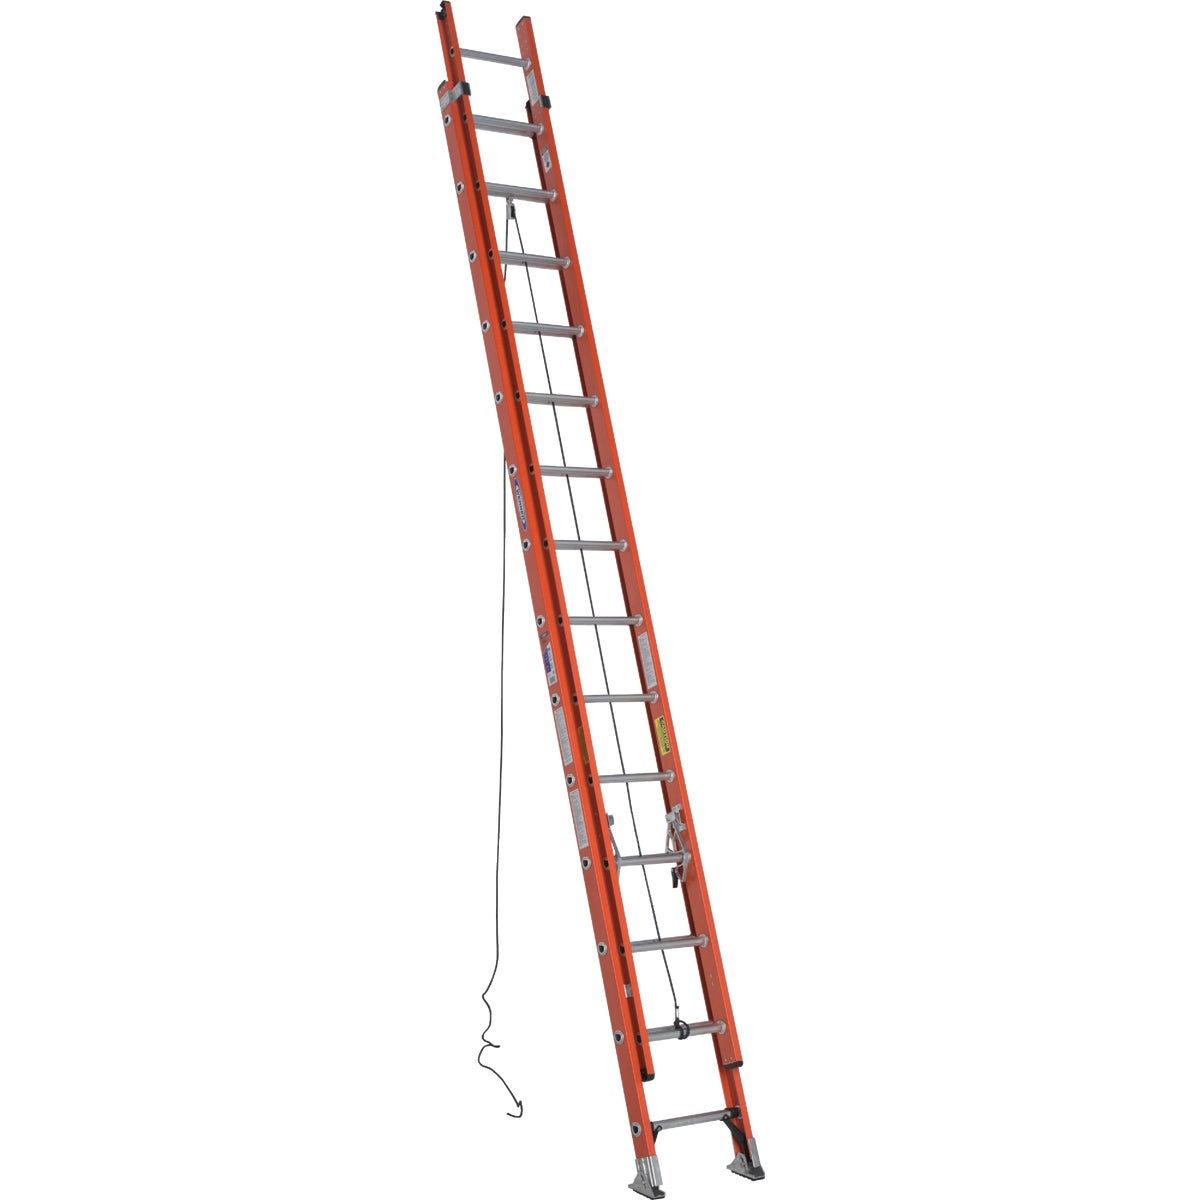 T-1A 28' FBGL EXT LADDER